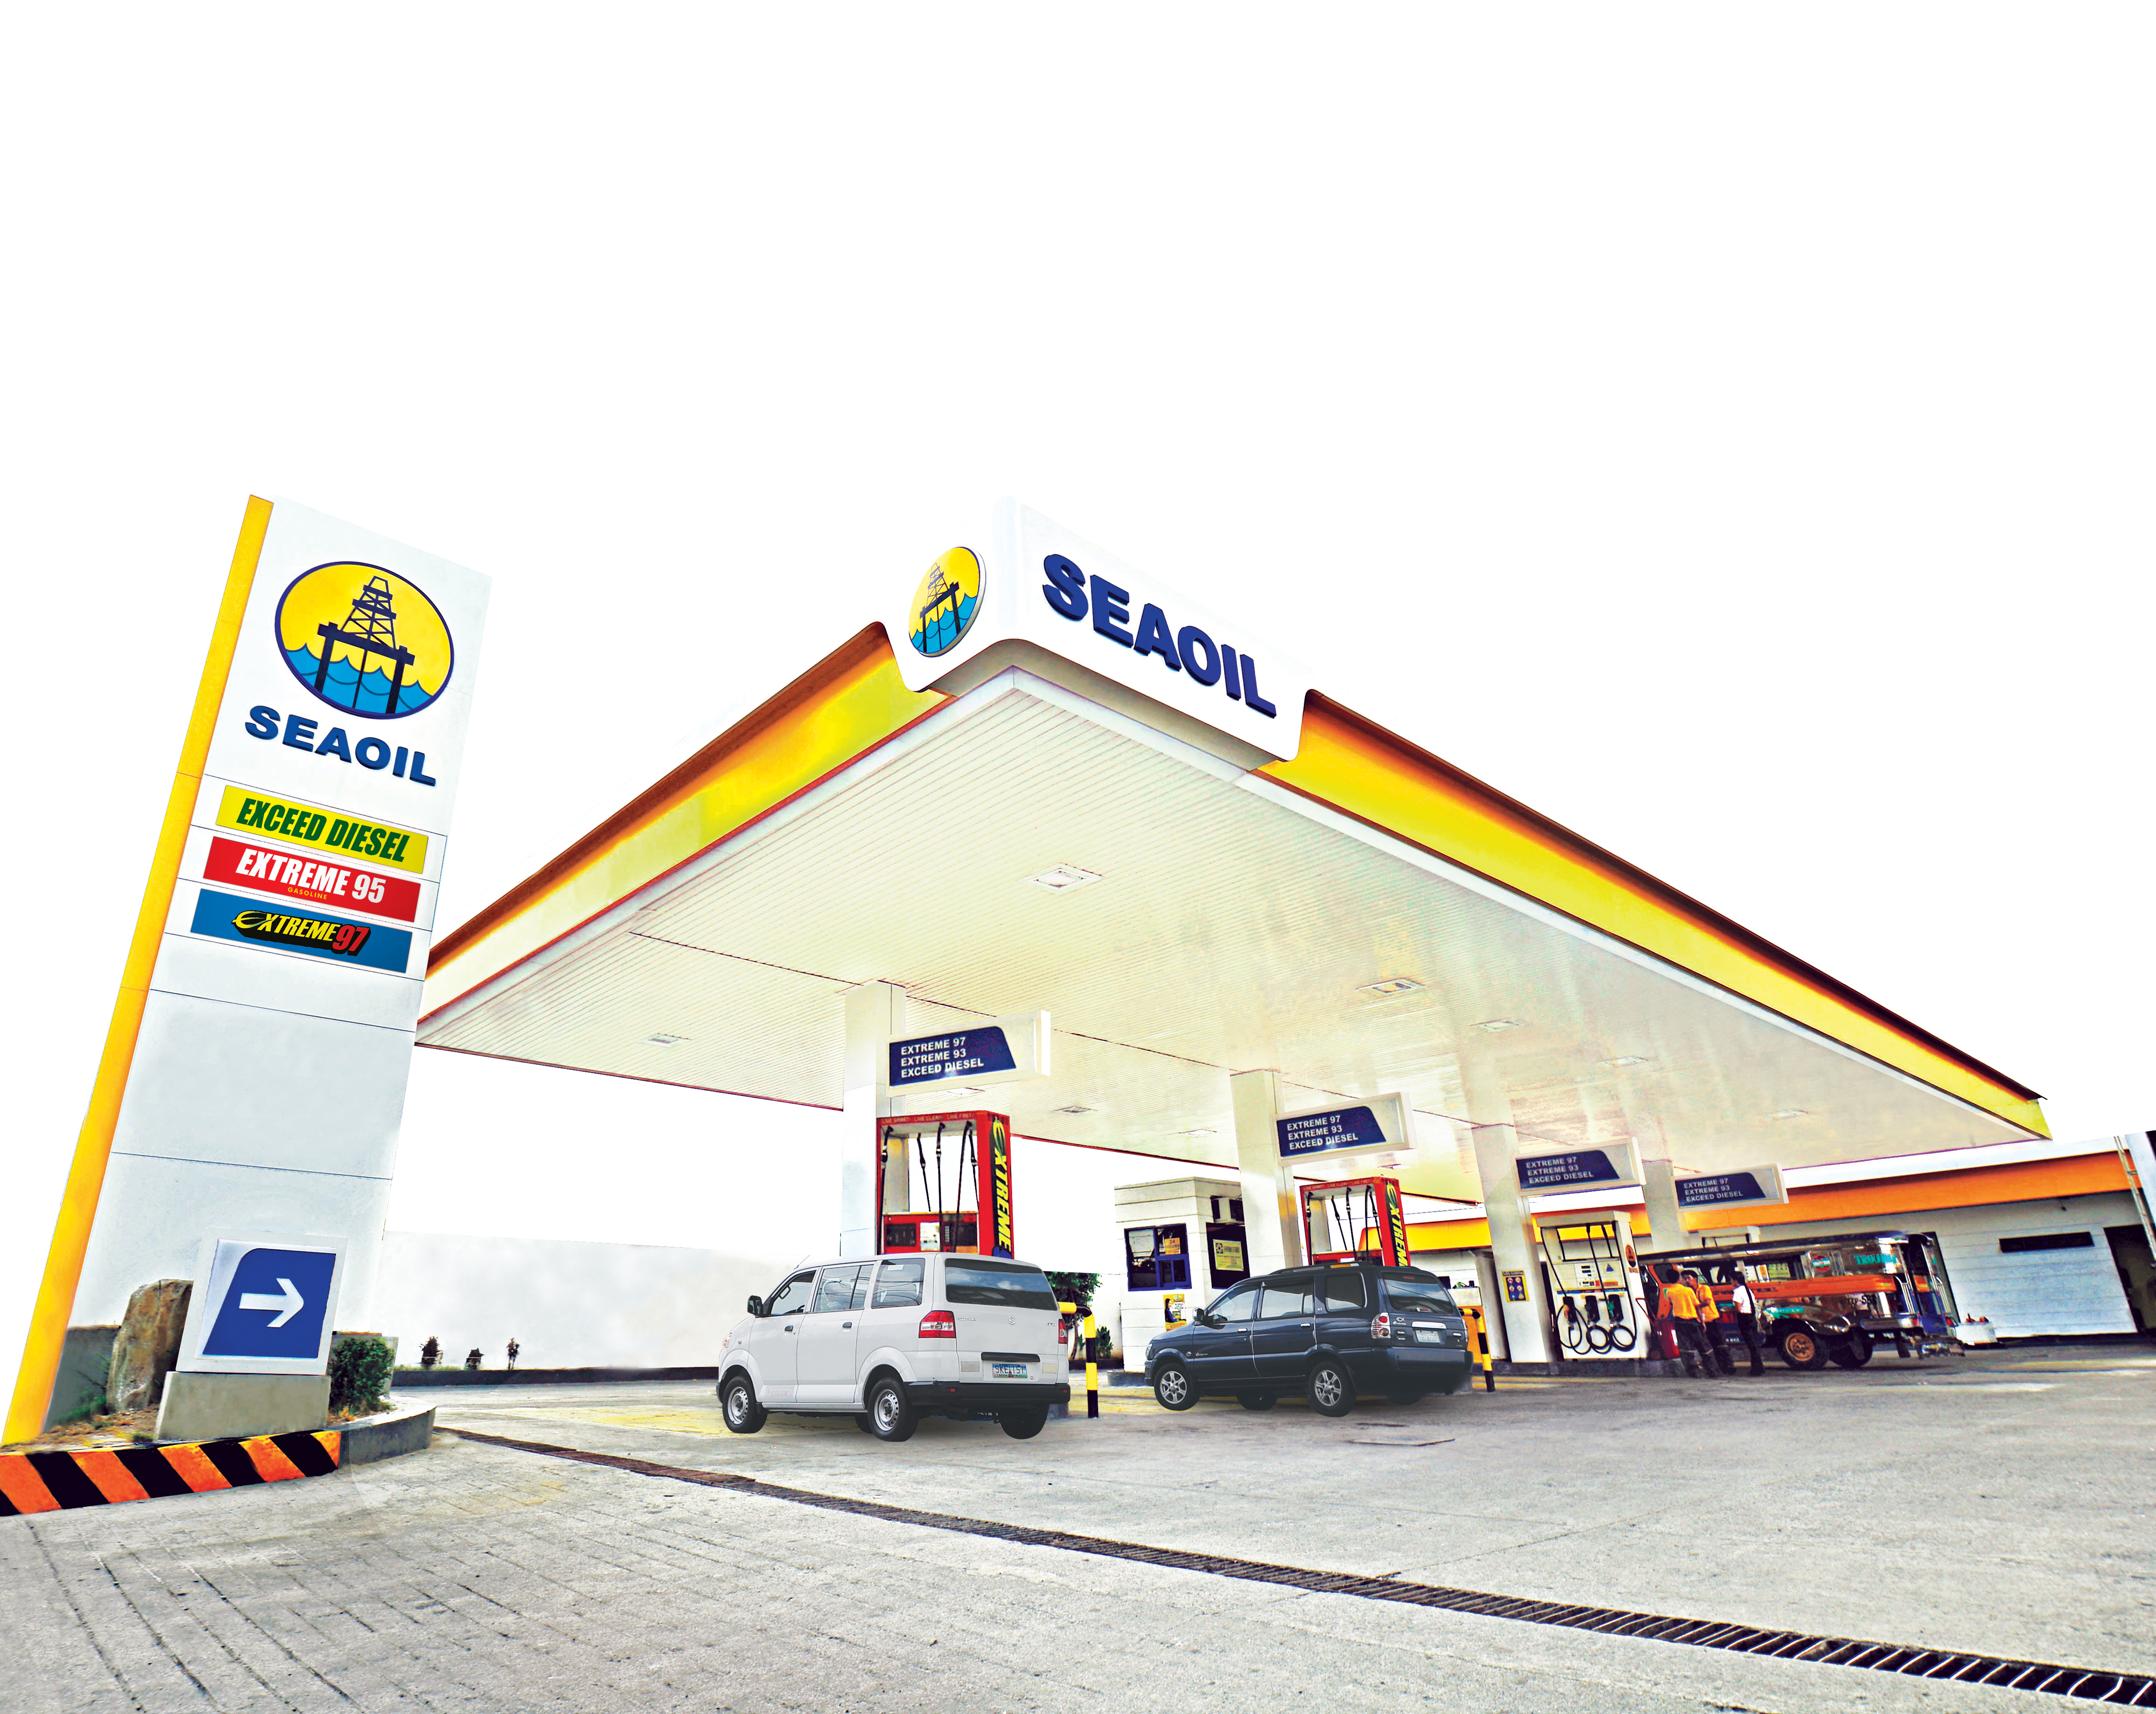 SEAOIL Lifetime Free Gas promo is back